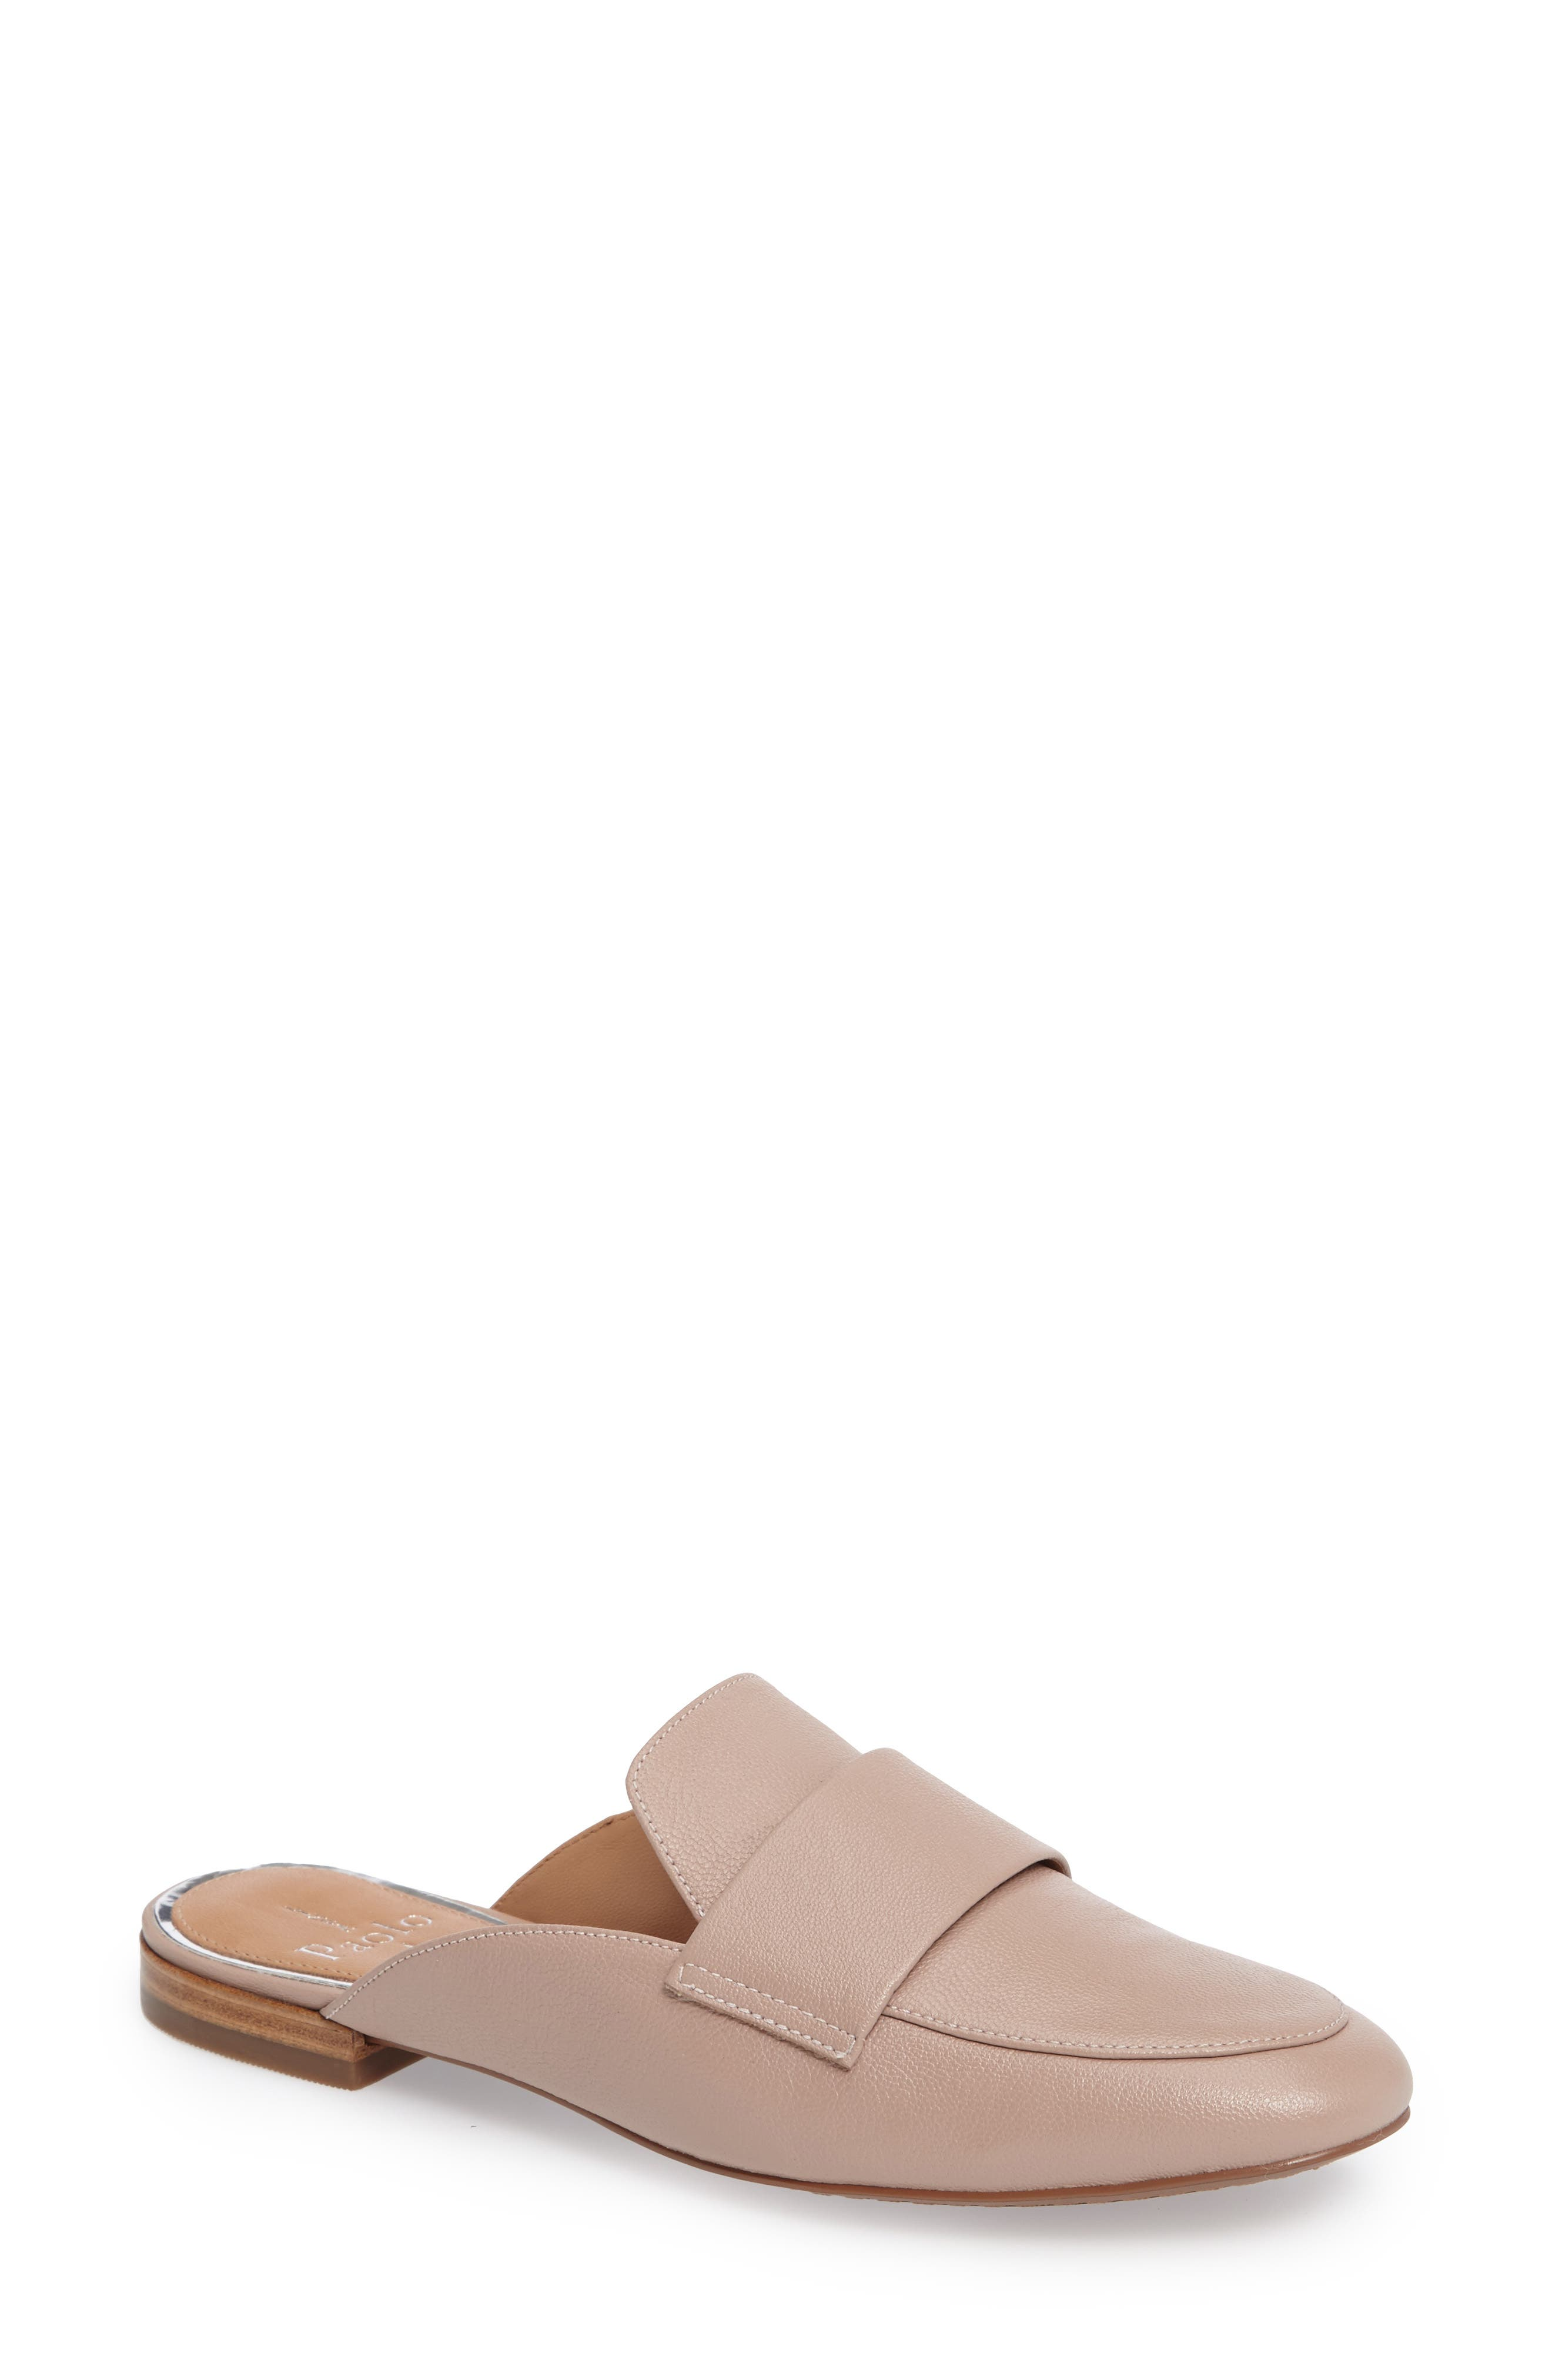 Linea Paolo Annie Loafer Mule- Pink